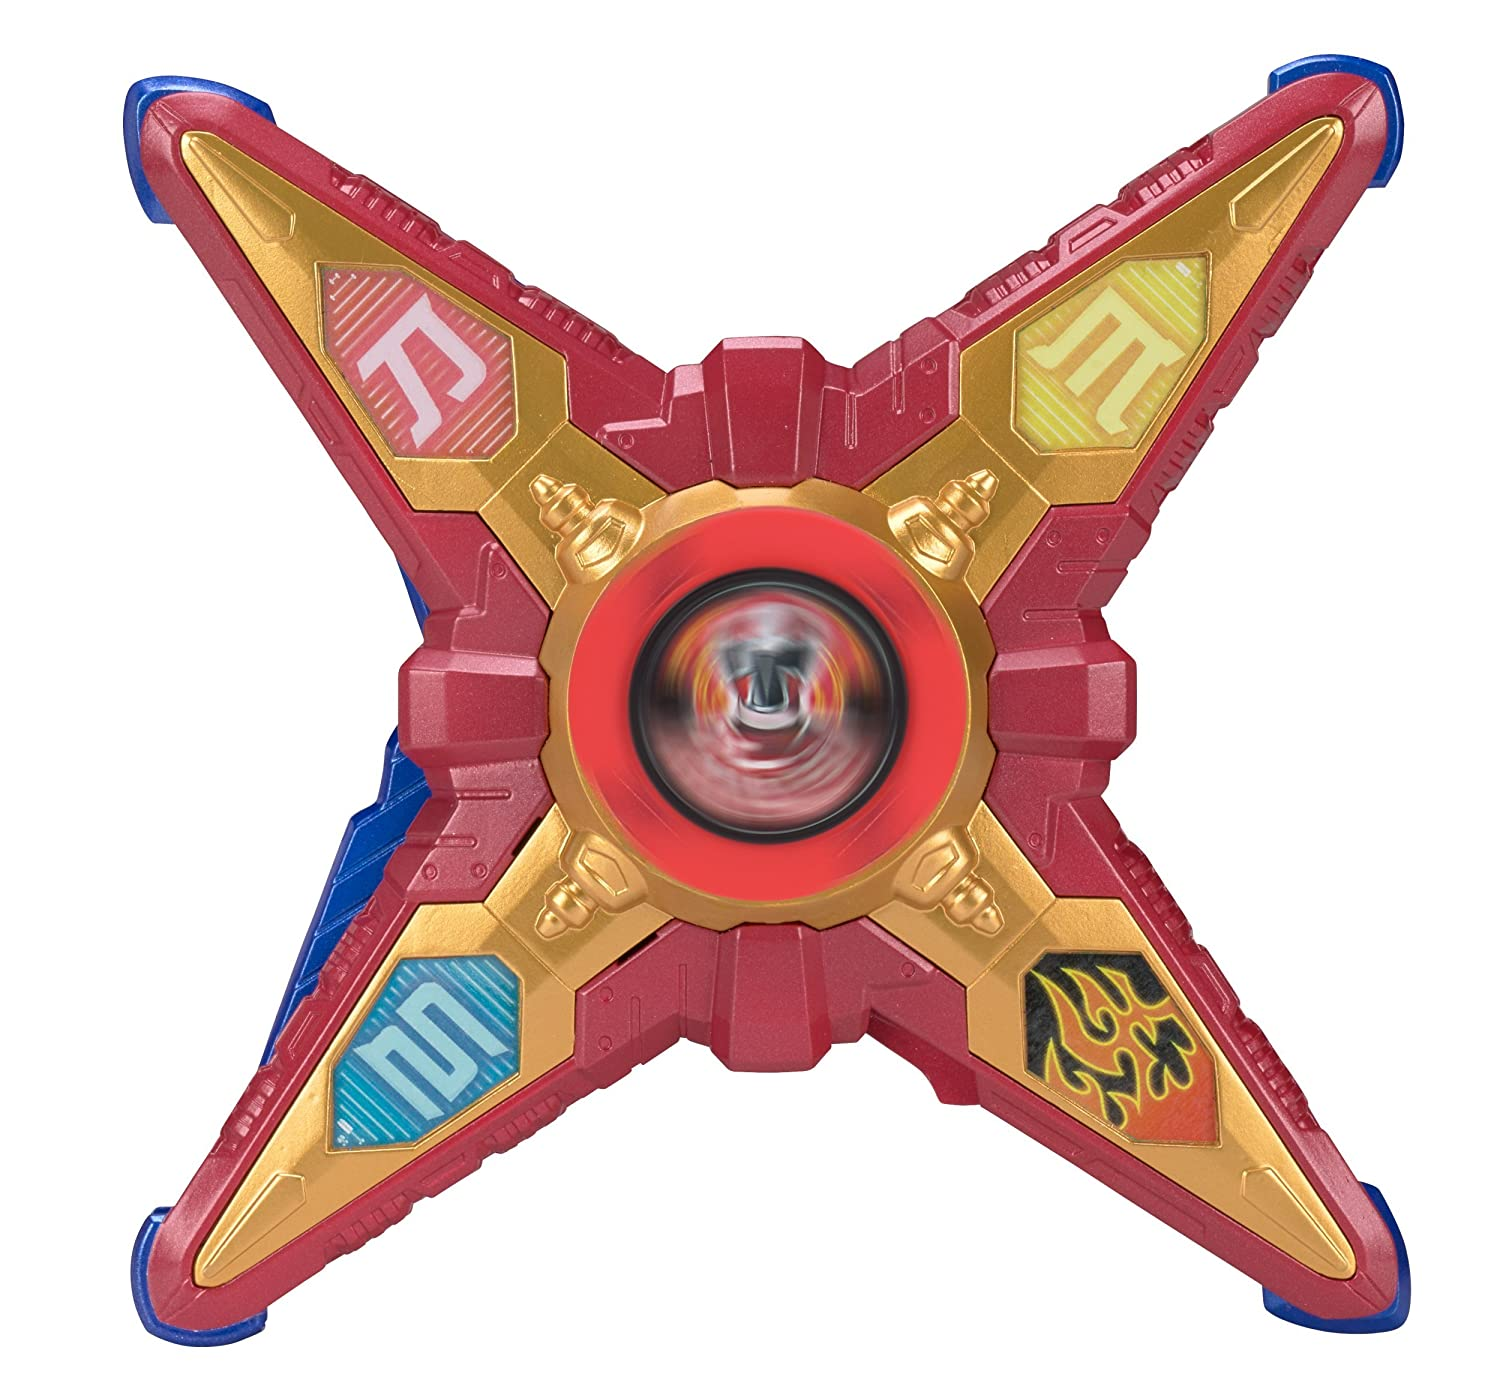 CDM product Power Rangers Ninja Steel DX Battle Morpher Action Figure big image